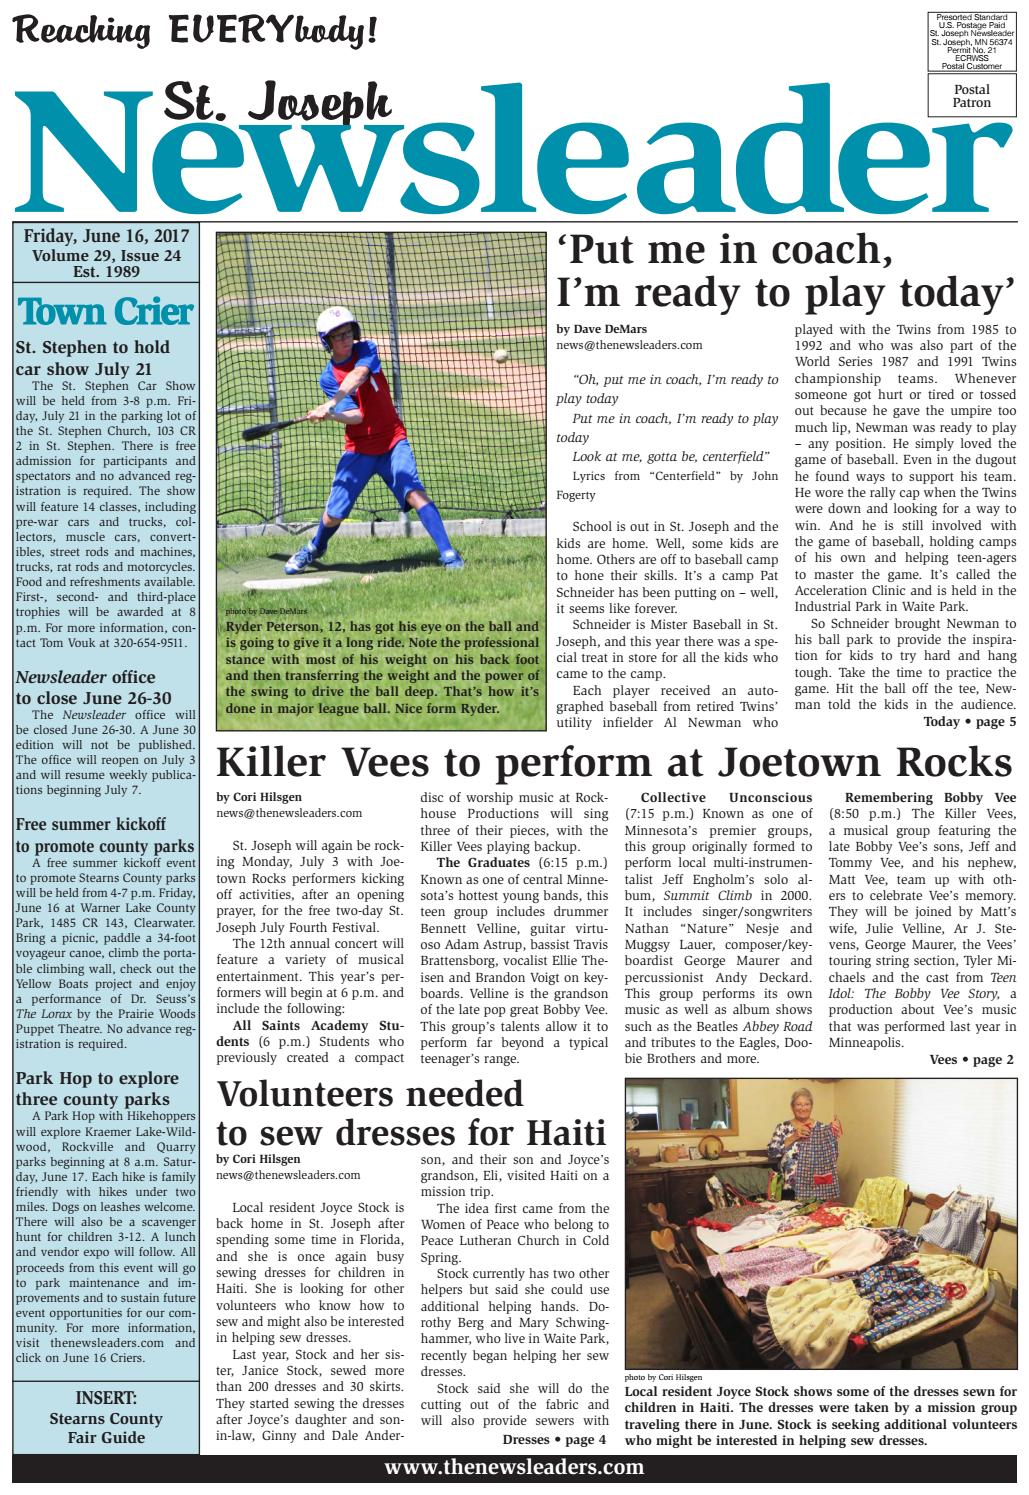 St. Joseph Newsleader - June 16, 2017 by The Newsleaders - issuu